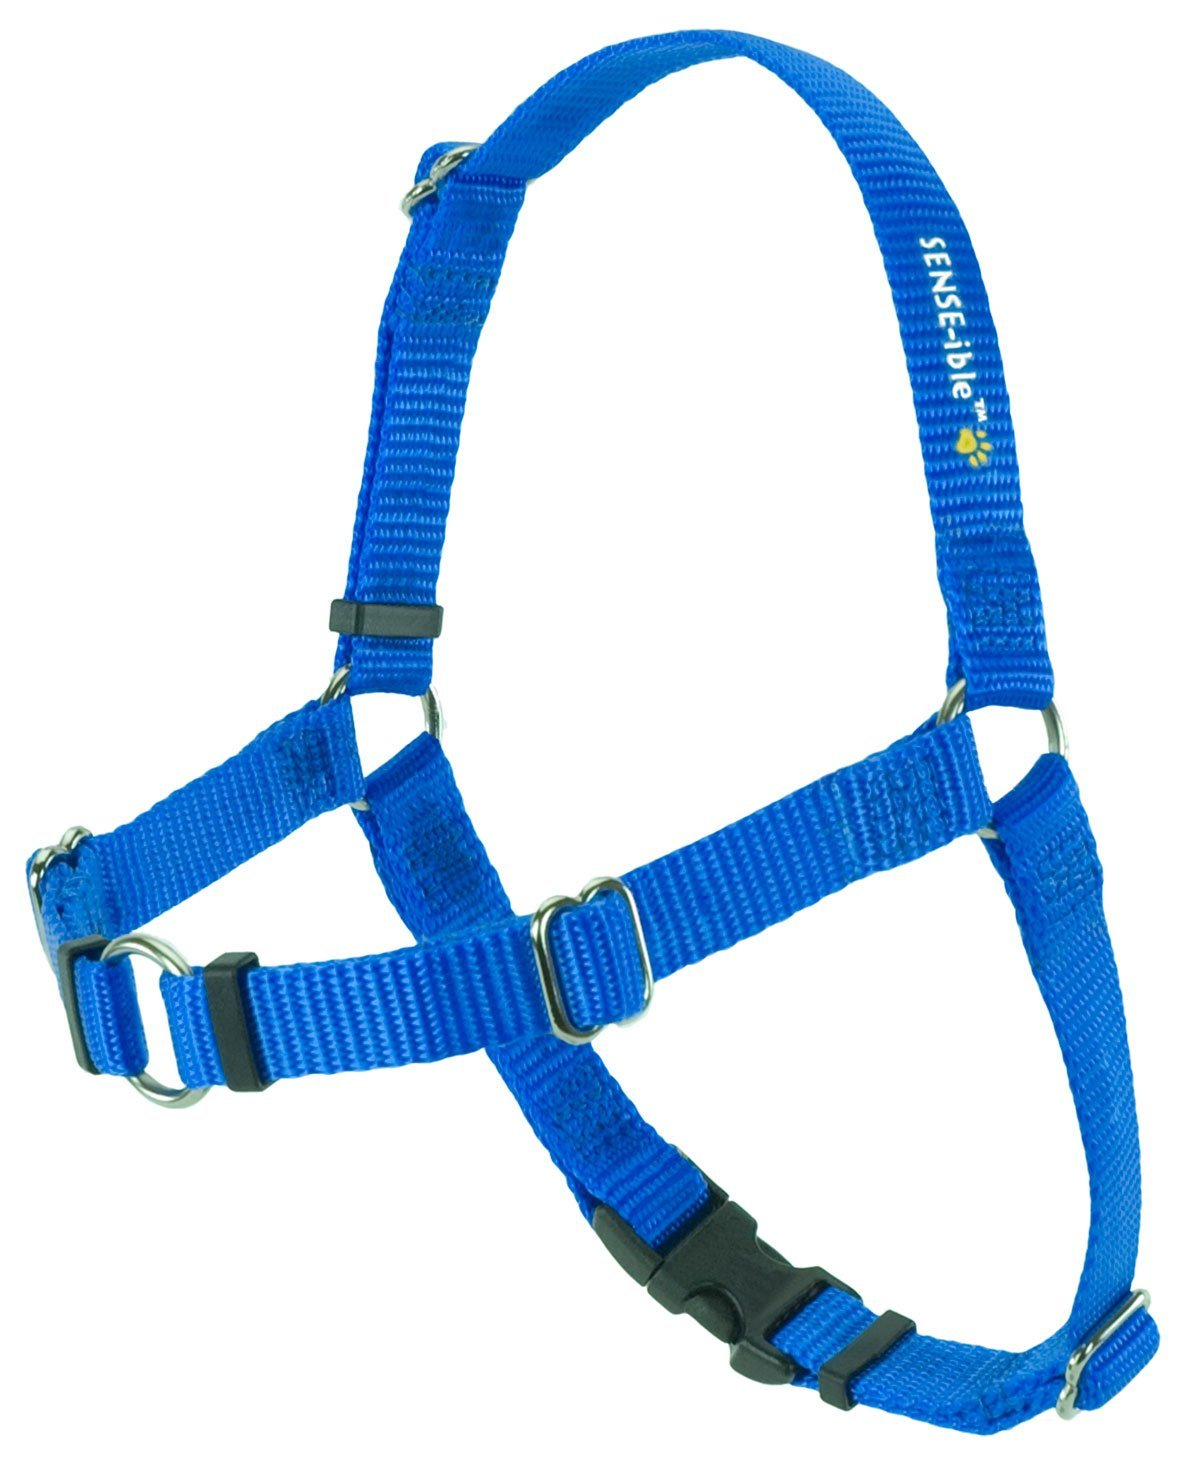 SENSE-ible No-Pull Dog Harness - Blue Small by Softouch